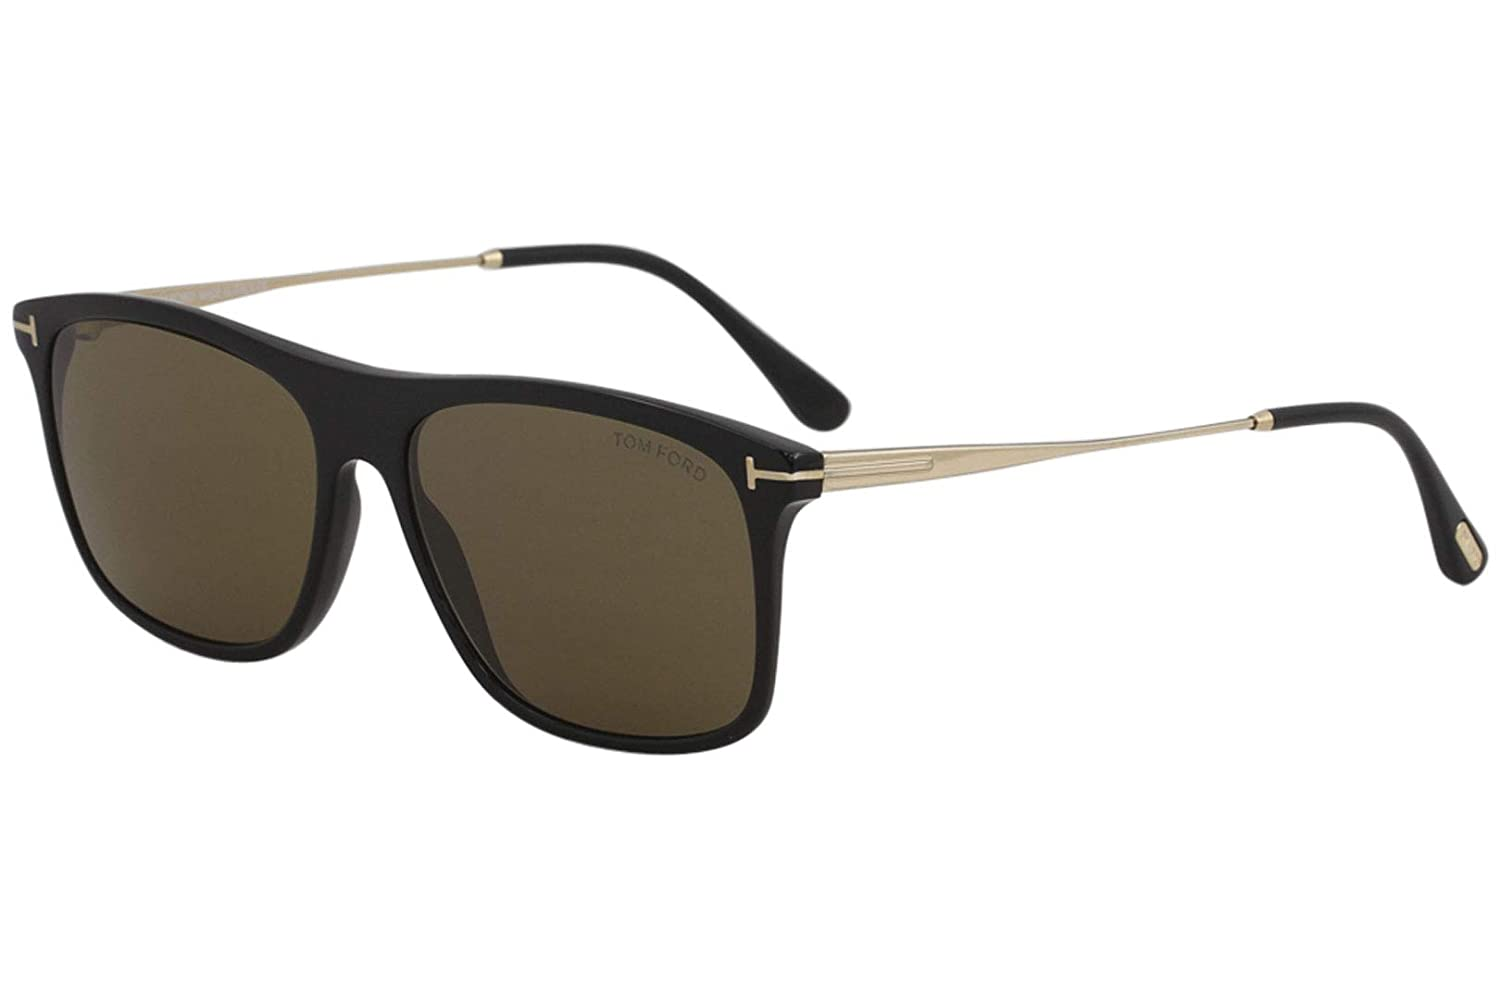 286d2a9a28905 Sunglasses Tom Ford FT 0588 Max- 02 01E shiny black   brown at Amazon Men s  Clothing store